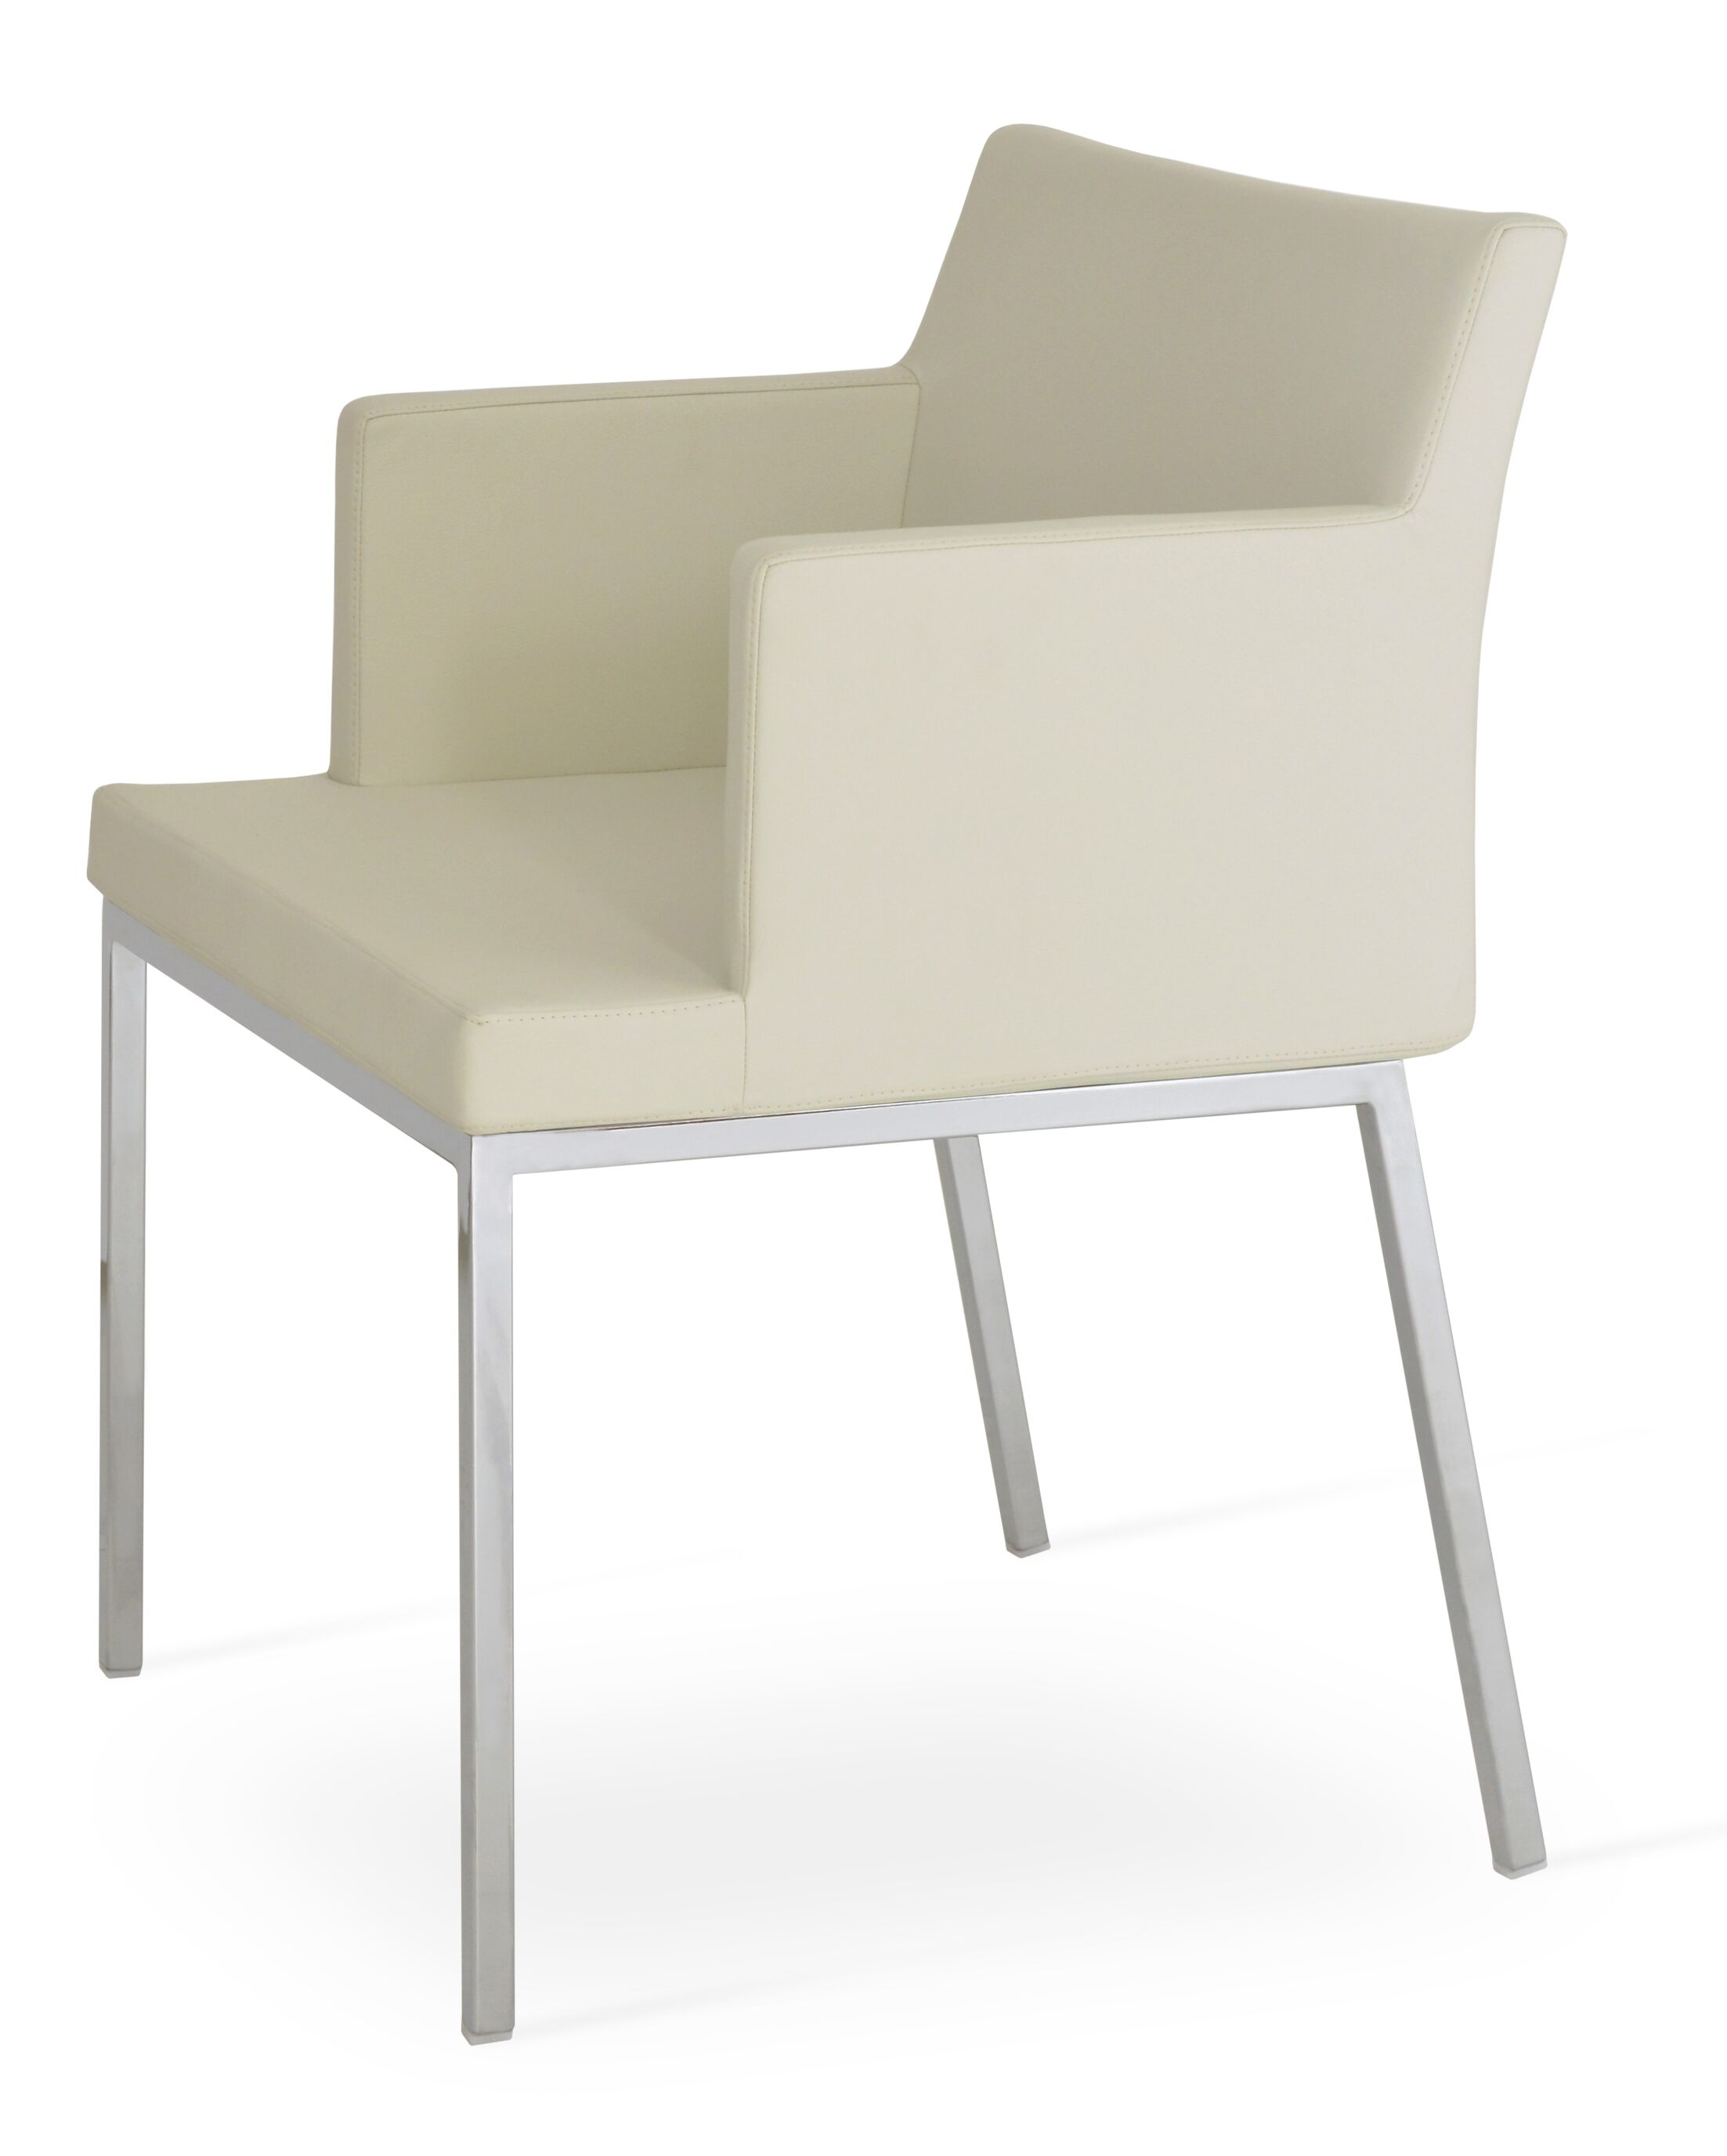 Parma Arm Chair Upholstery Type: PPM - Cream